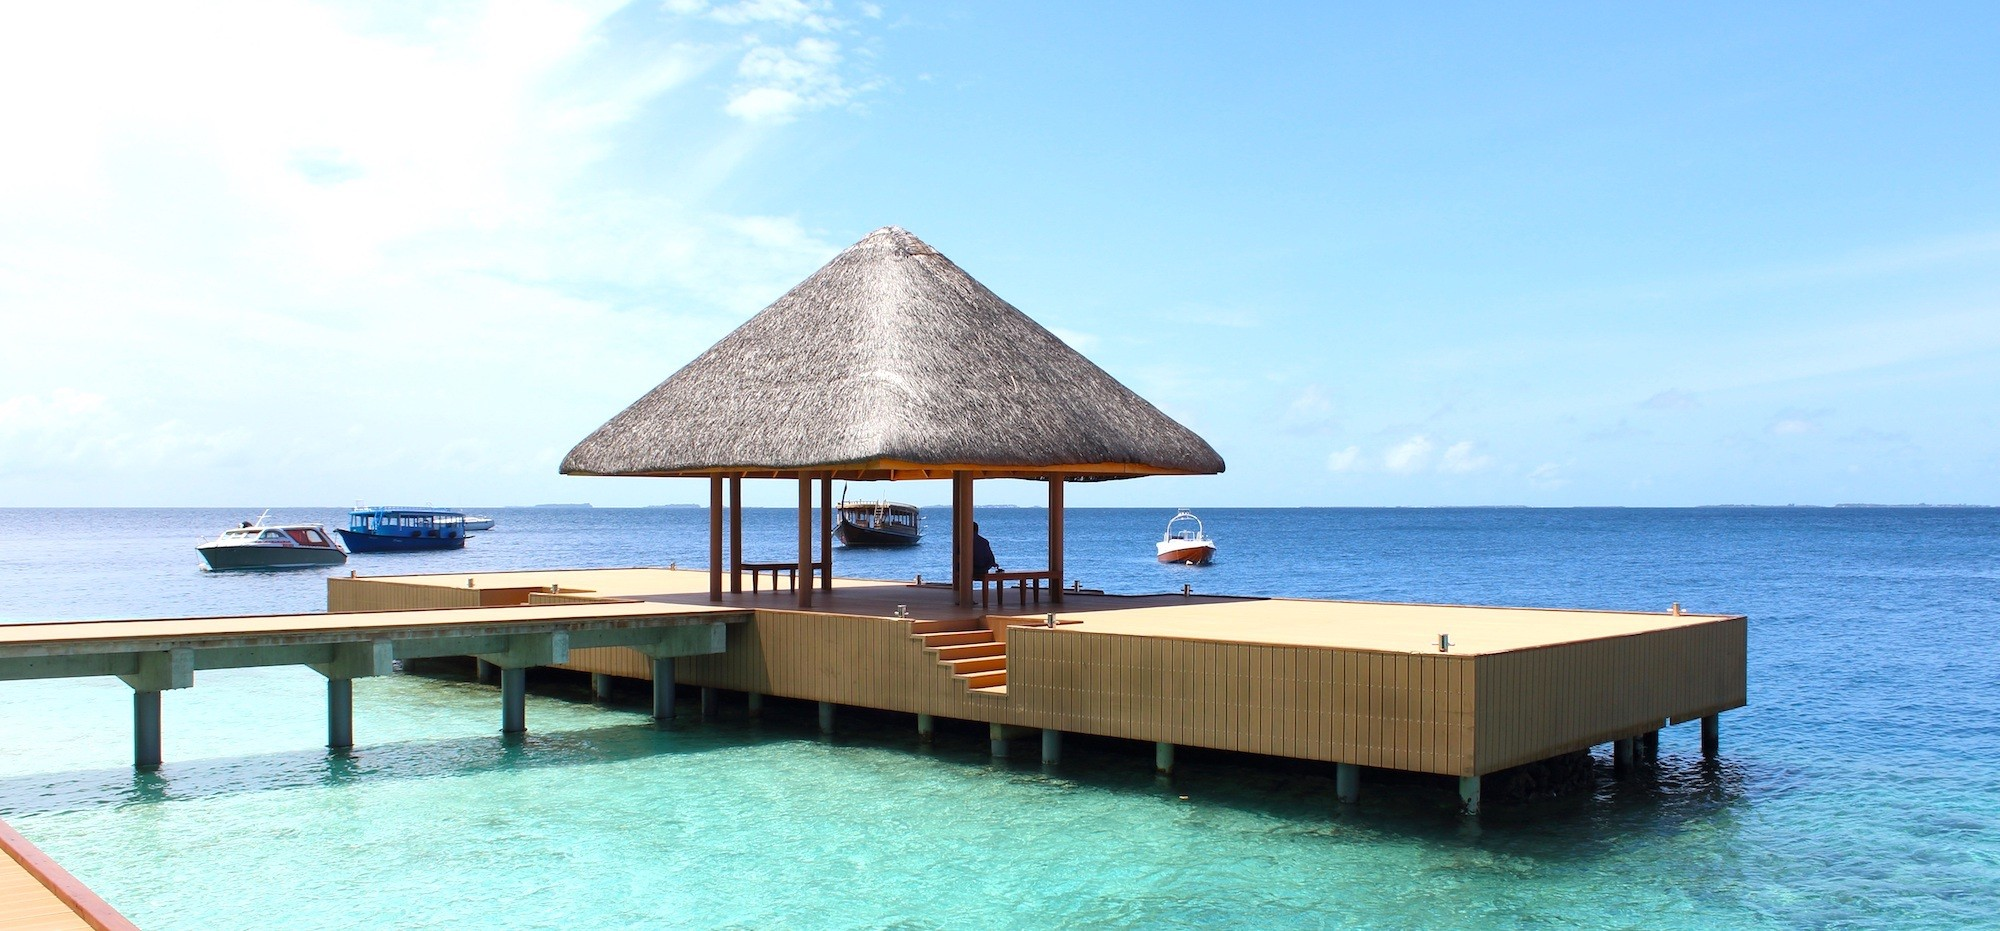 Maldives Jetty Beach Hut